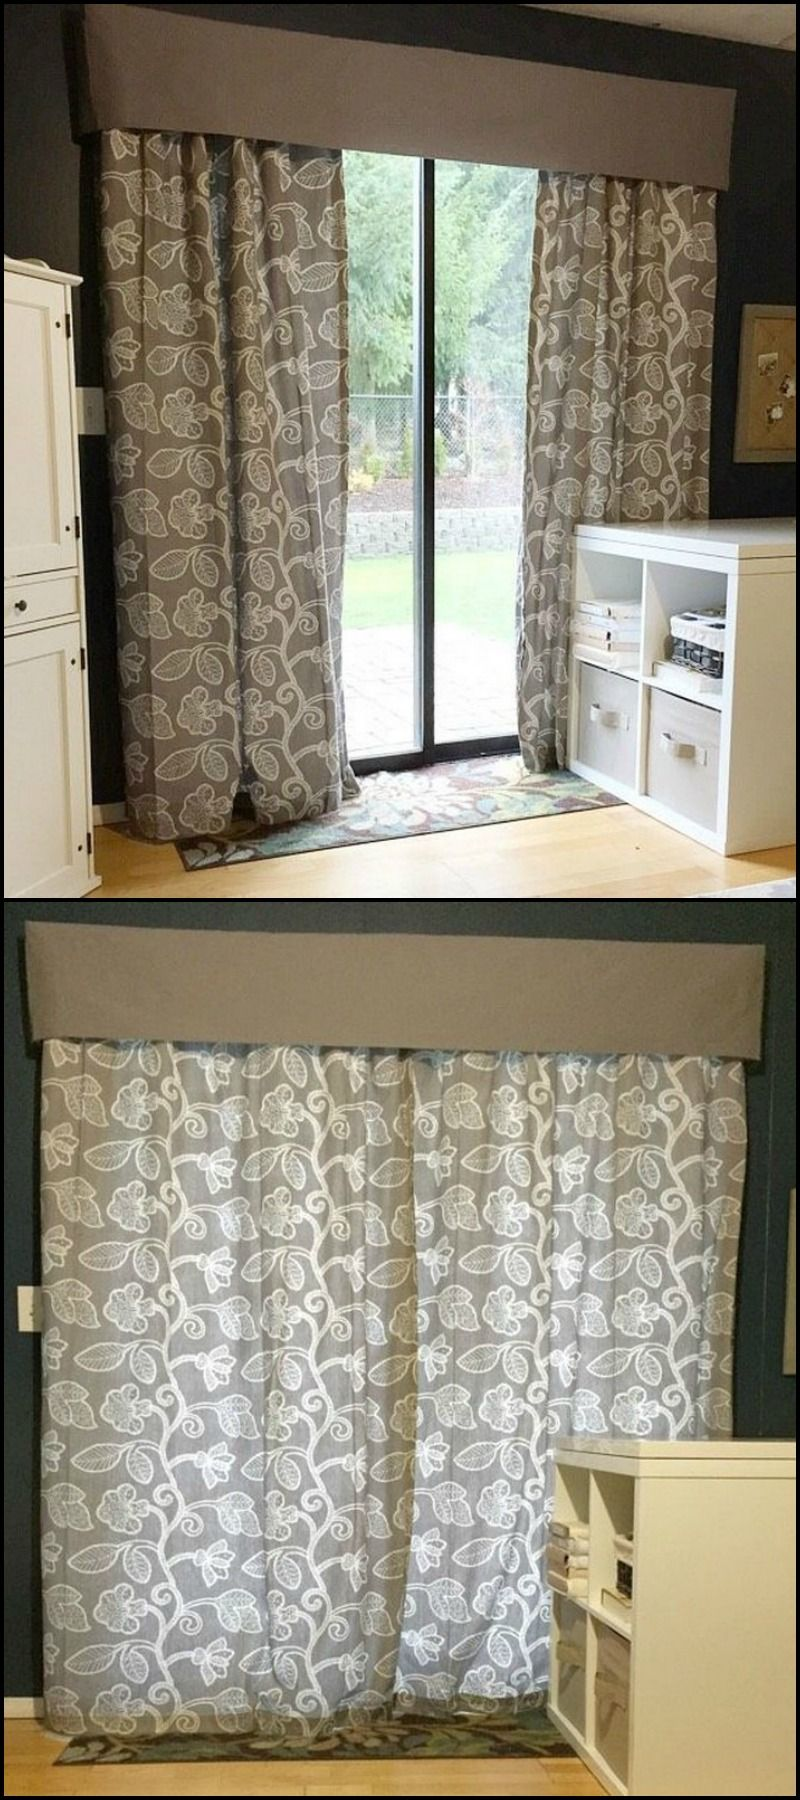 Lower Your Energy Bill With DIY Insulated Curtains Theownerbuildernetworkco Cjit These Were Made For Keeping The Owners Home Warm During